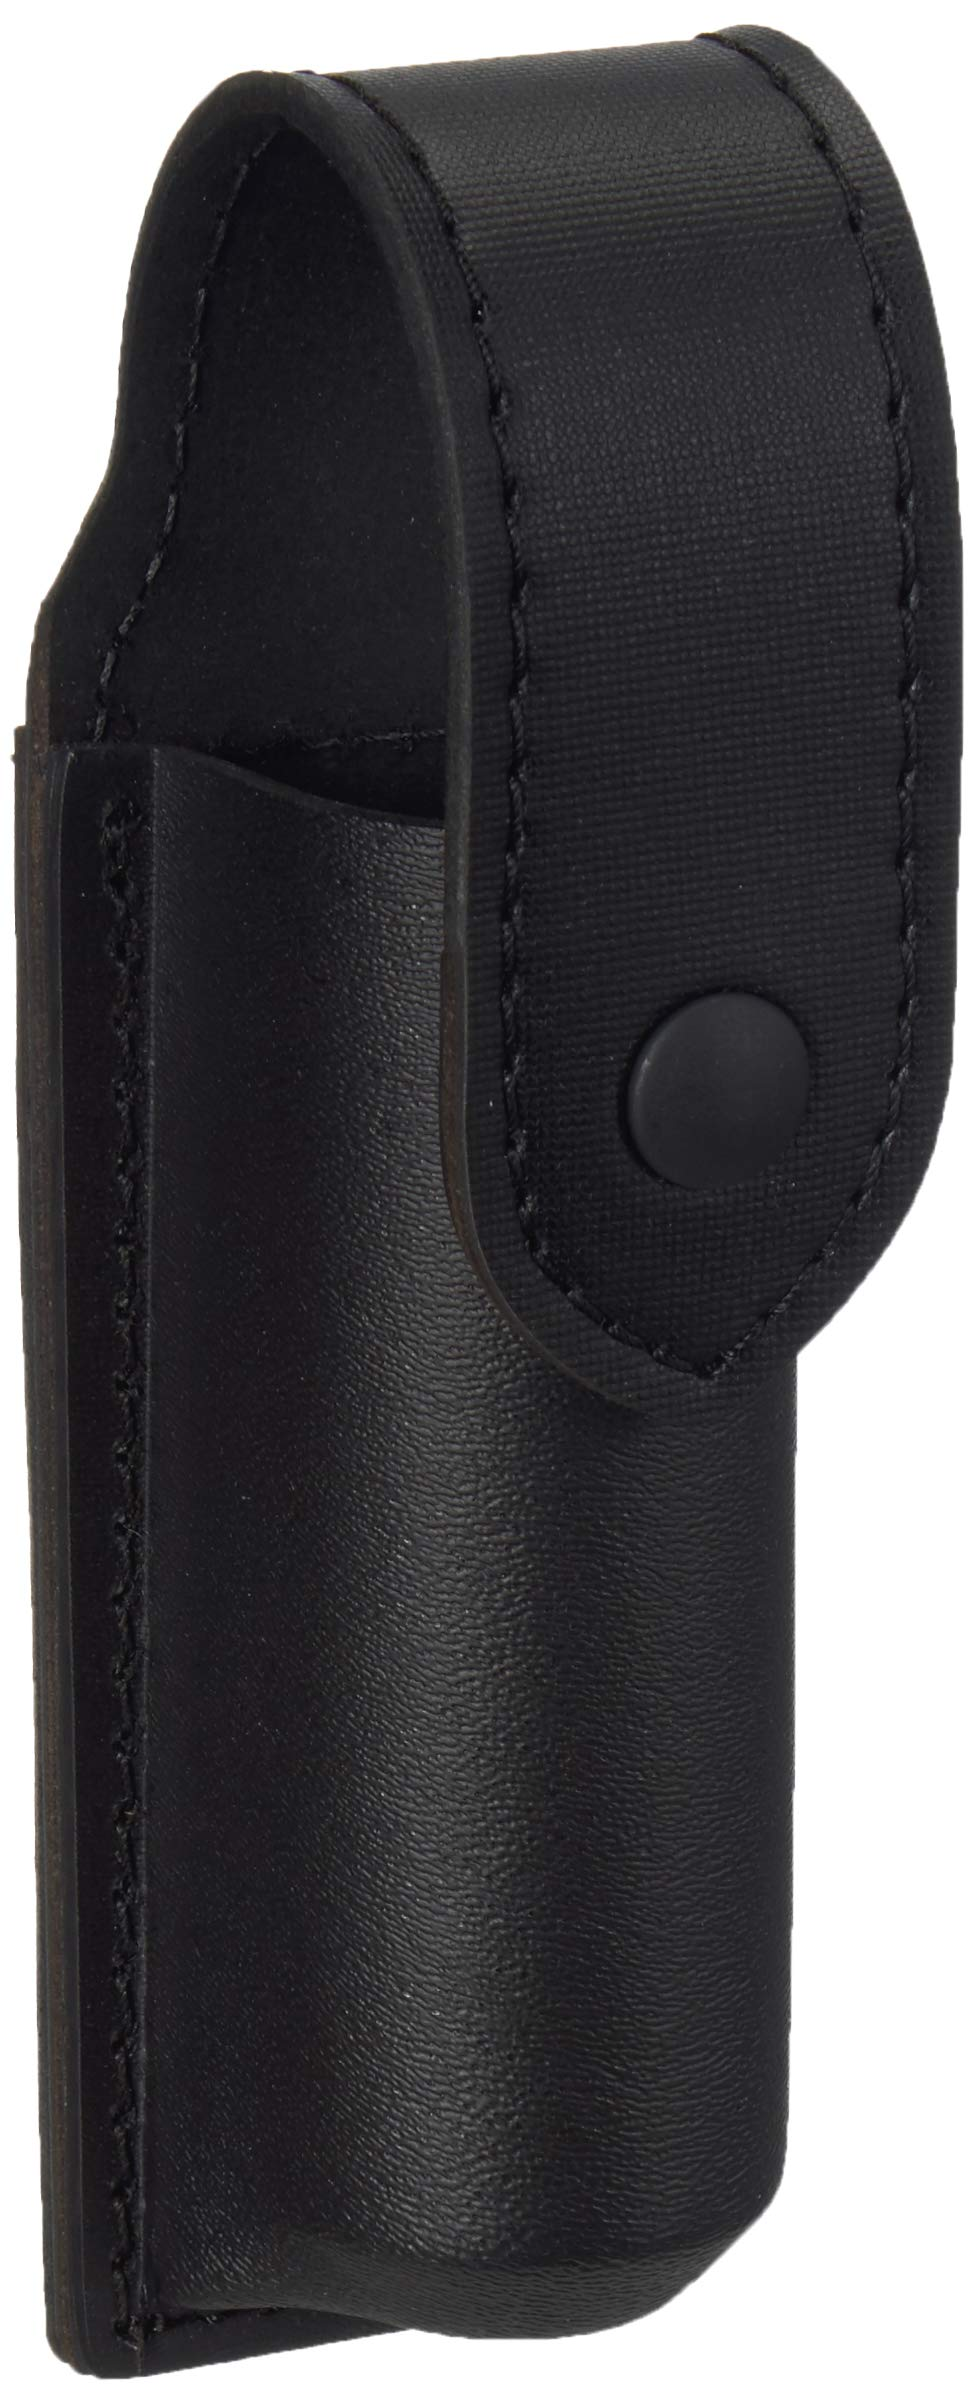 Safariland Duty Gear MK4 Black Snap OC Pepper Spray Holder (STX Tactical Black) by Safariland Duty Gear